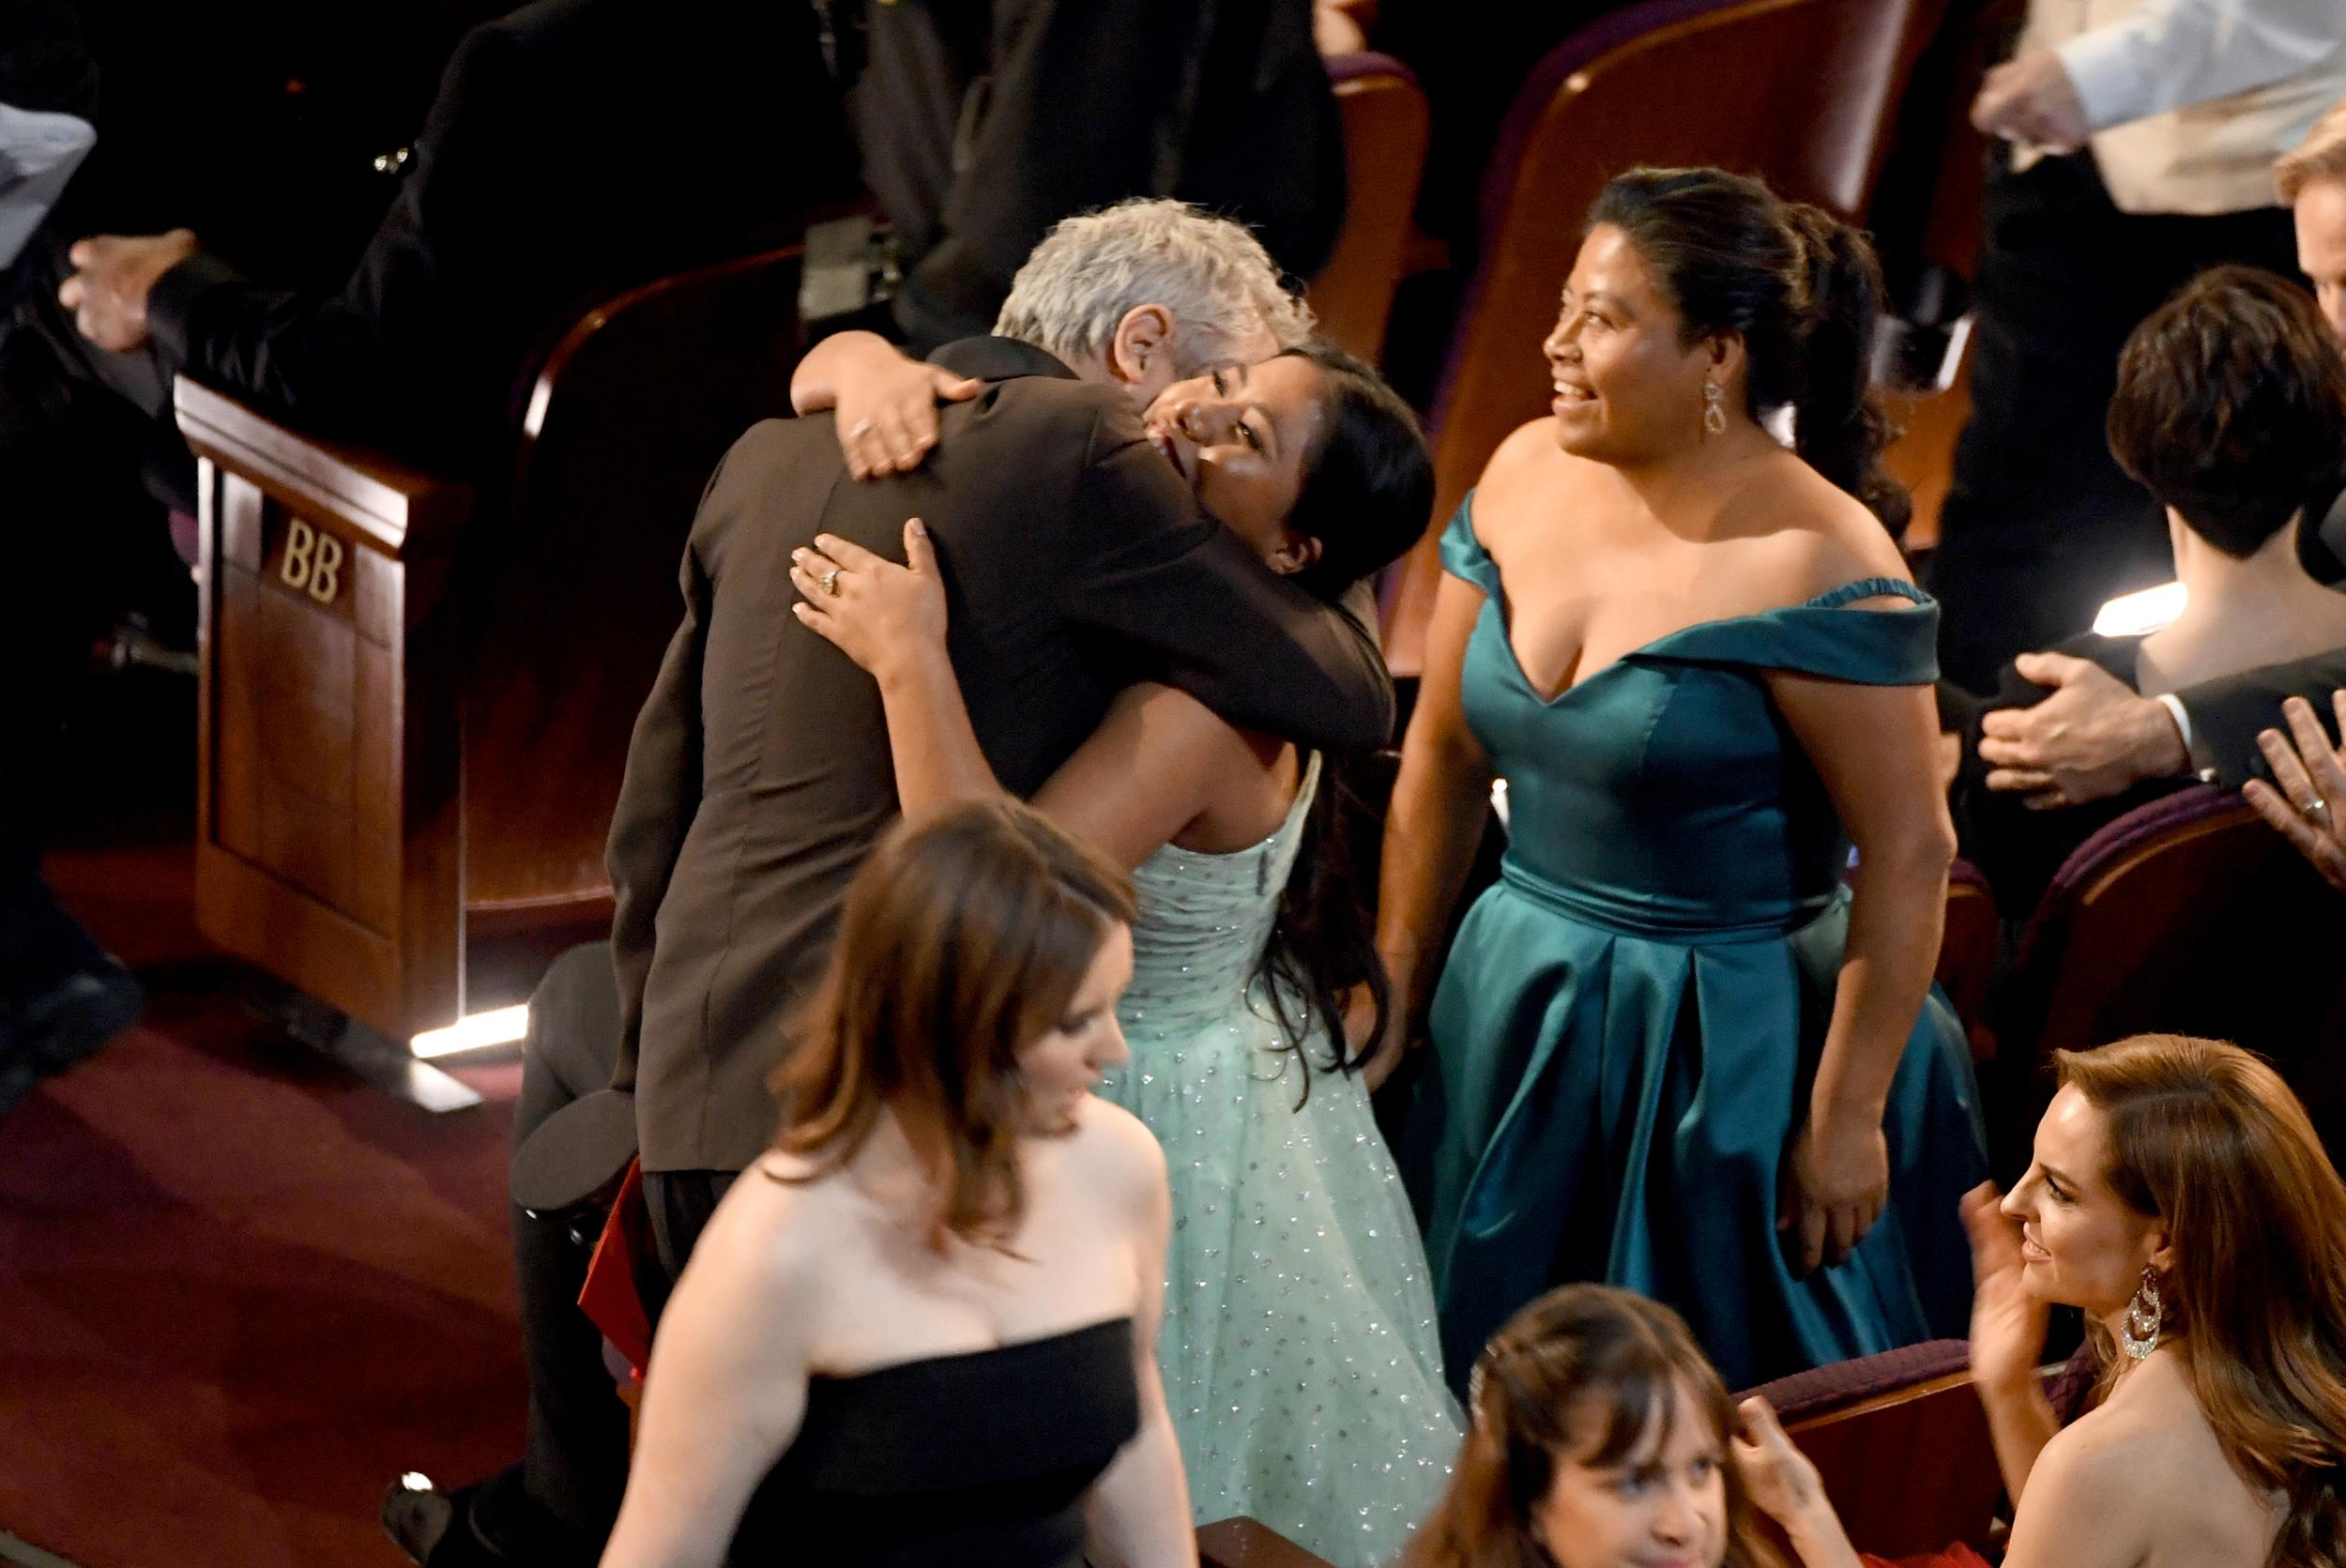 HOLLYWOOD, CALIFORNIA - FEBRUARY 24: (L-R) Alfonso Cuaron and Yalitza Aparicio react after Mr. Cuaron was announced as winner of the Cinematography award for 'Roma' onstage during the 91st Annual Academy Awards at Dolby Theatre on February 24, 2019 in Hollywood, California. (Photo by Kevin Winter/Getty Images)